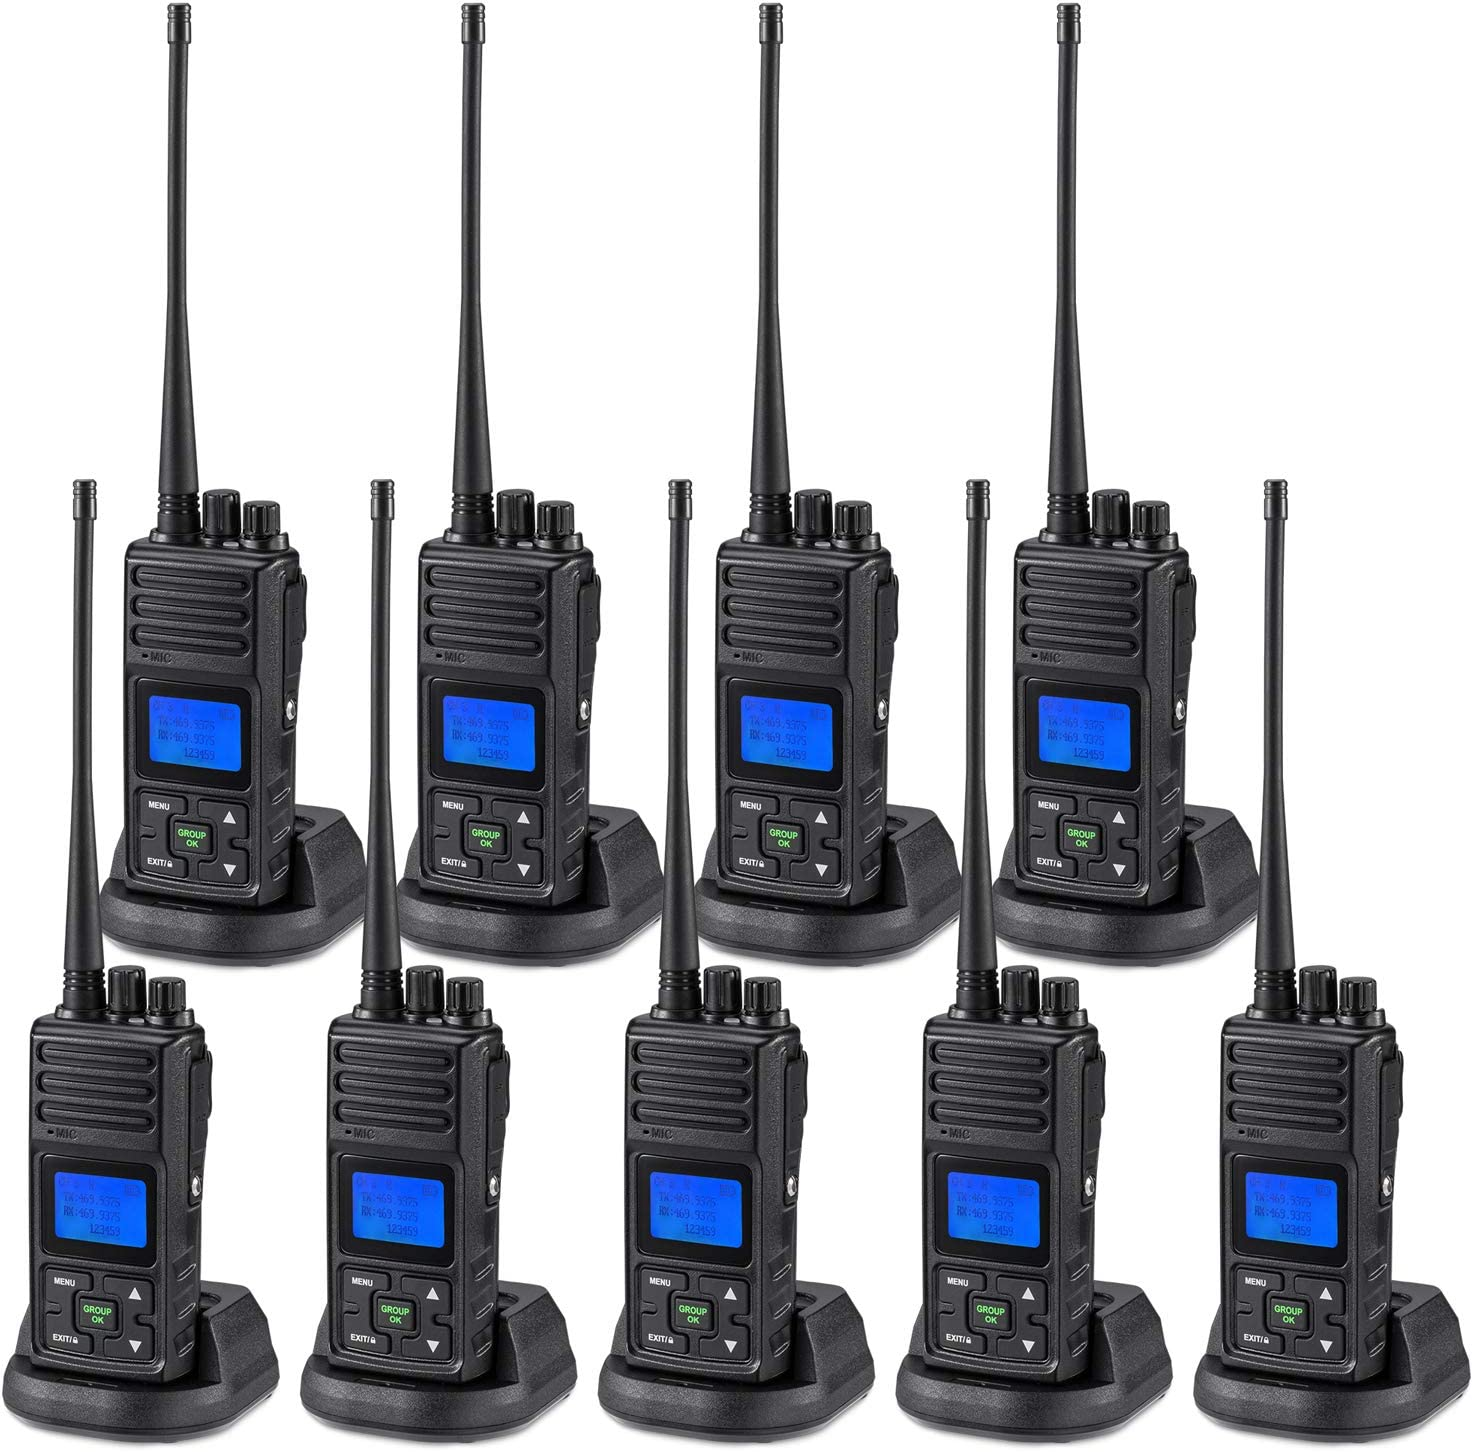 SAMCOM 5 Watts Two Way Radio Long Range Handheld UHF Business Ham Radio for Adult Programmable Walkie Talkie with Rechargeable 1500mAh Battery LCD Display Charging Docks Earpieces (9 Packs)